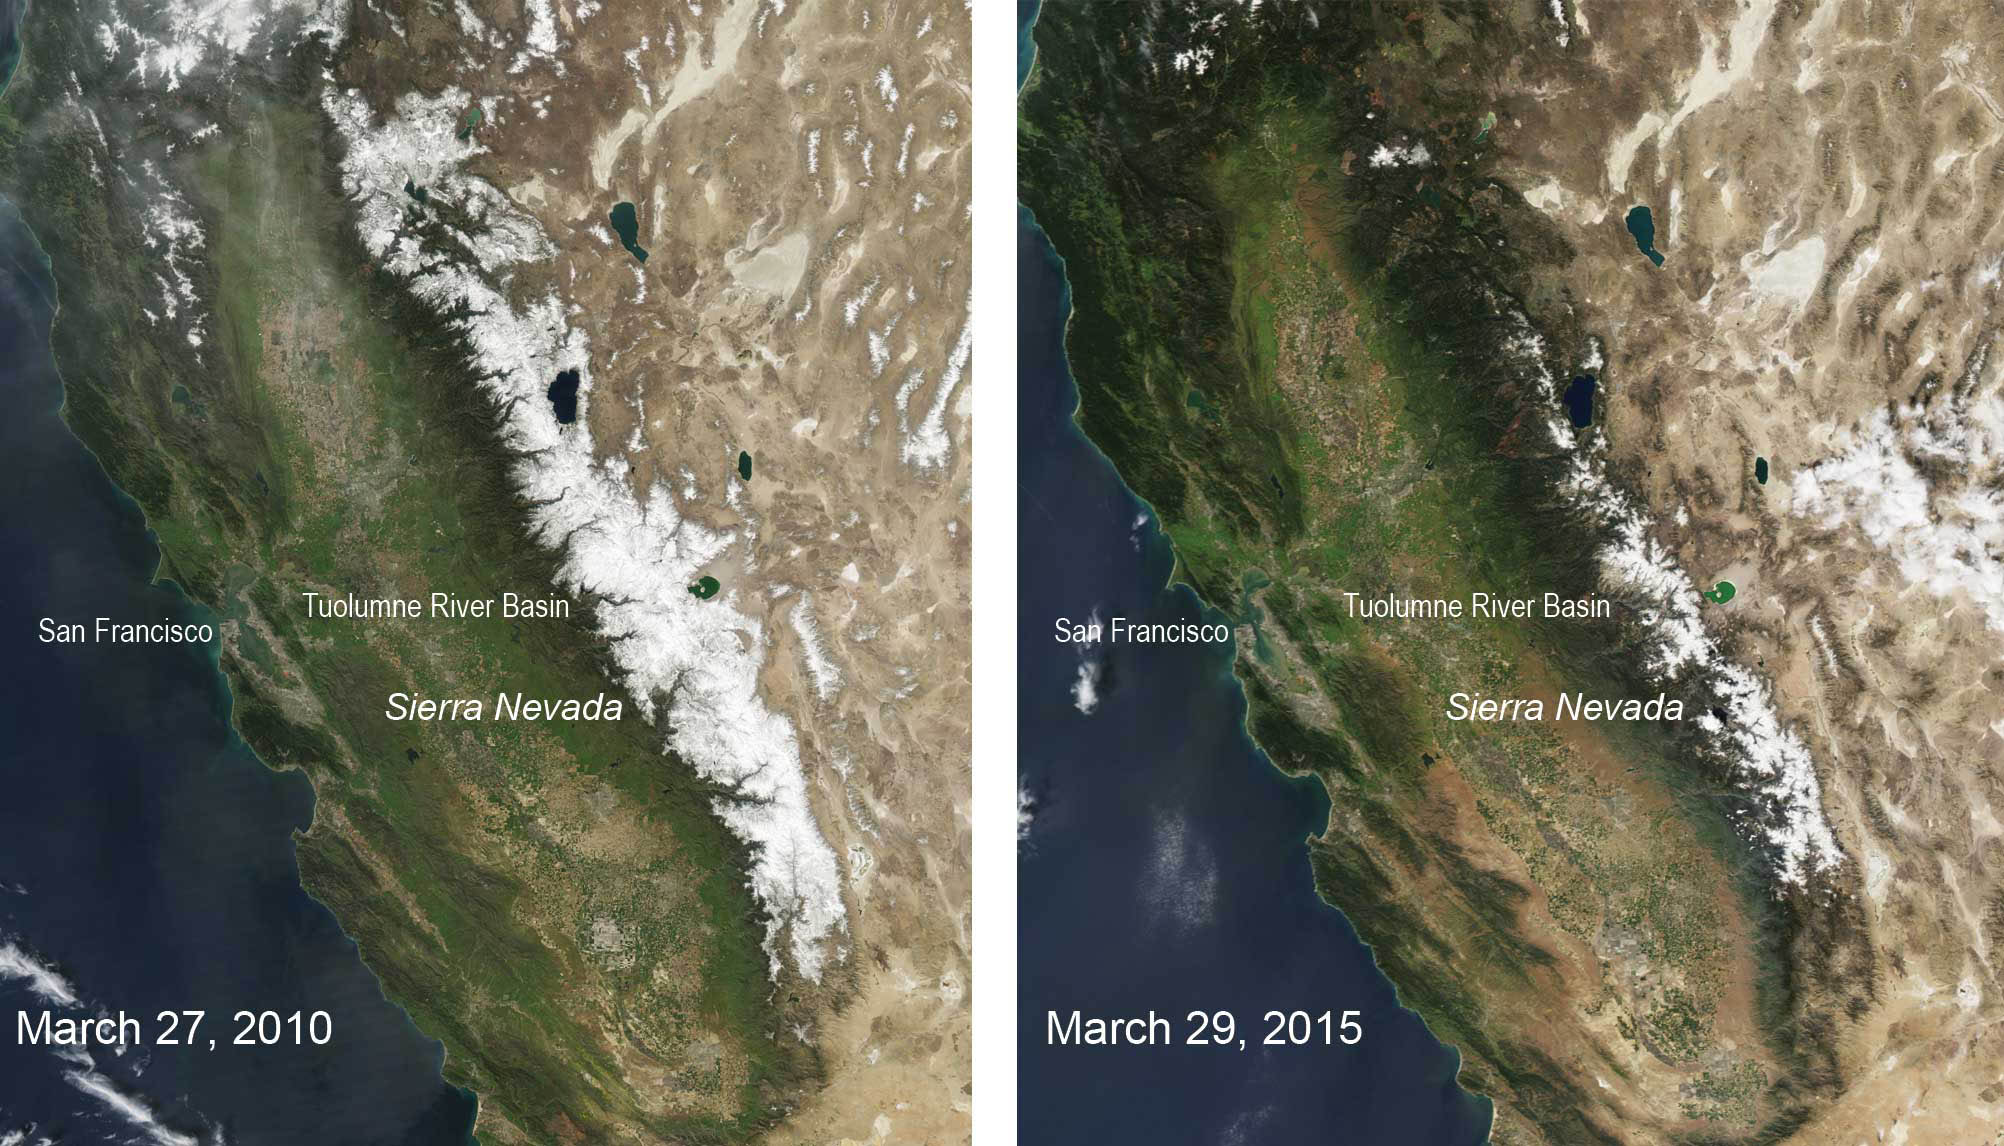 See California's snowpack diminished